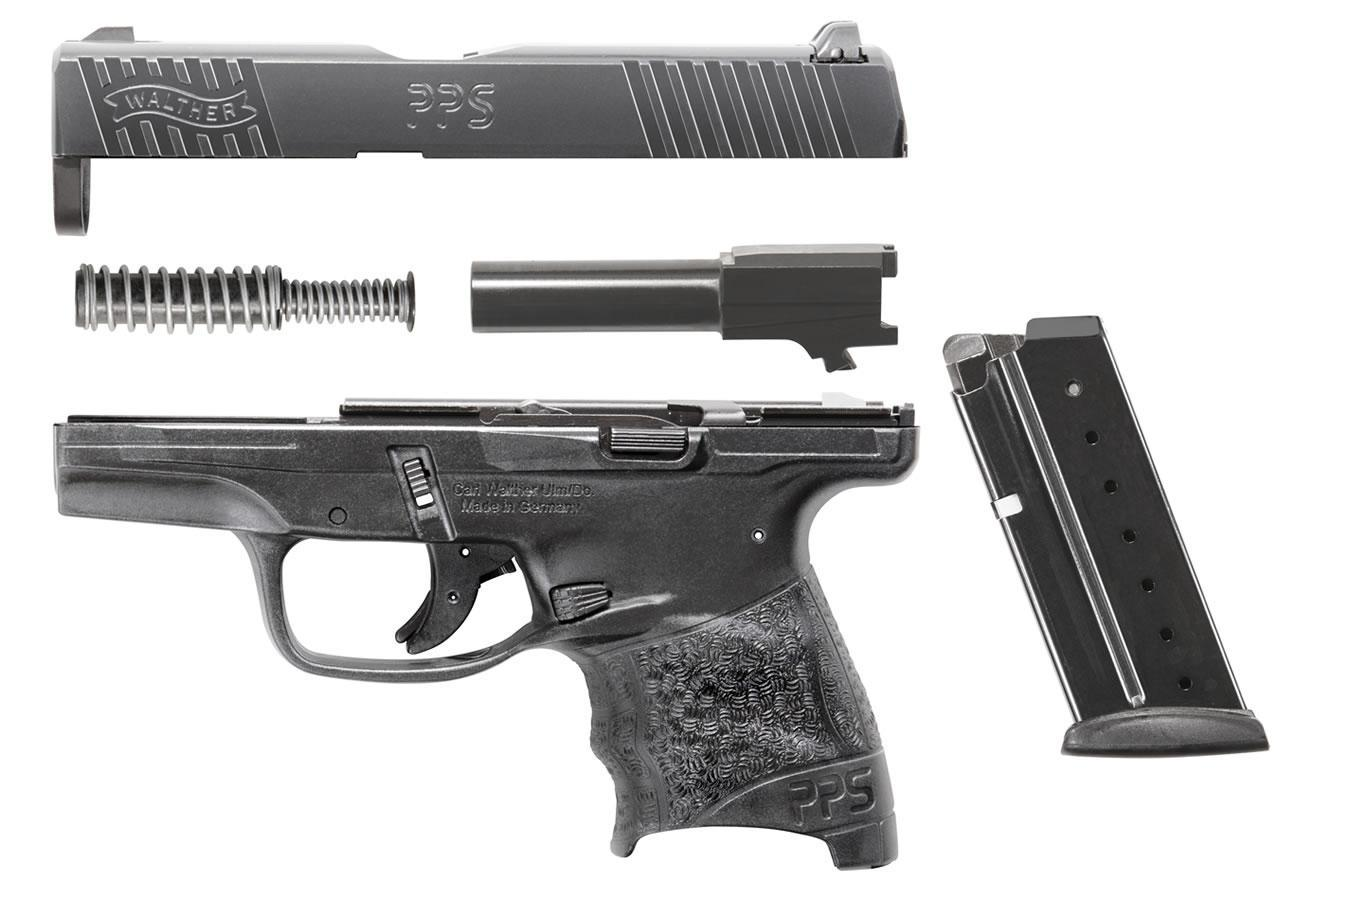 Walther PPS M2 chambered in 9 mm is ideal for concealed carry